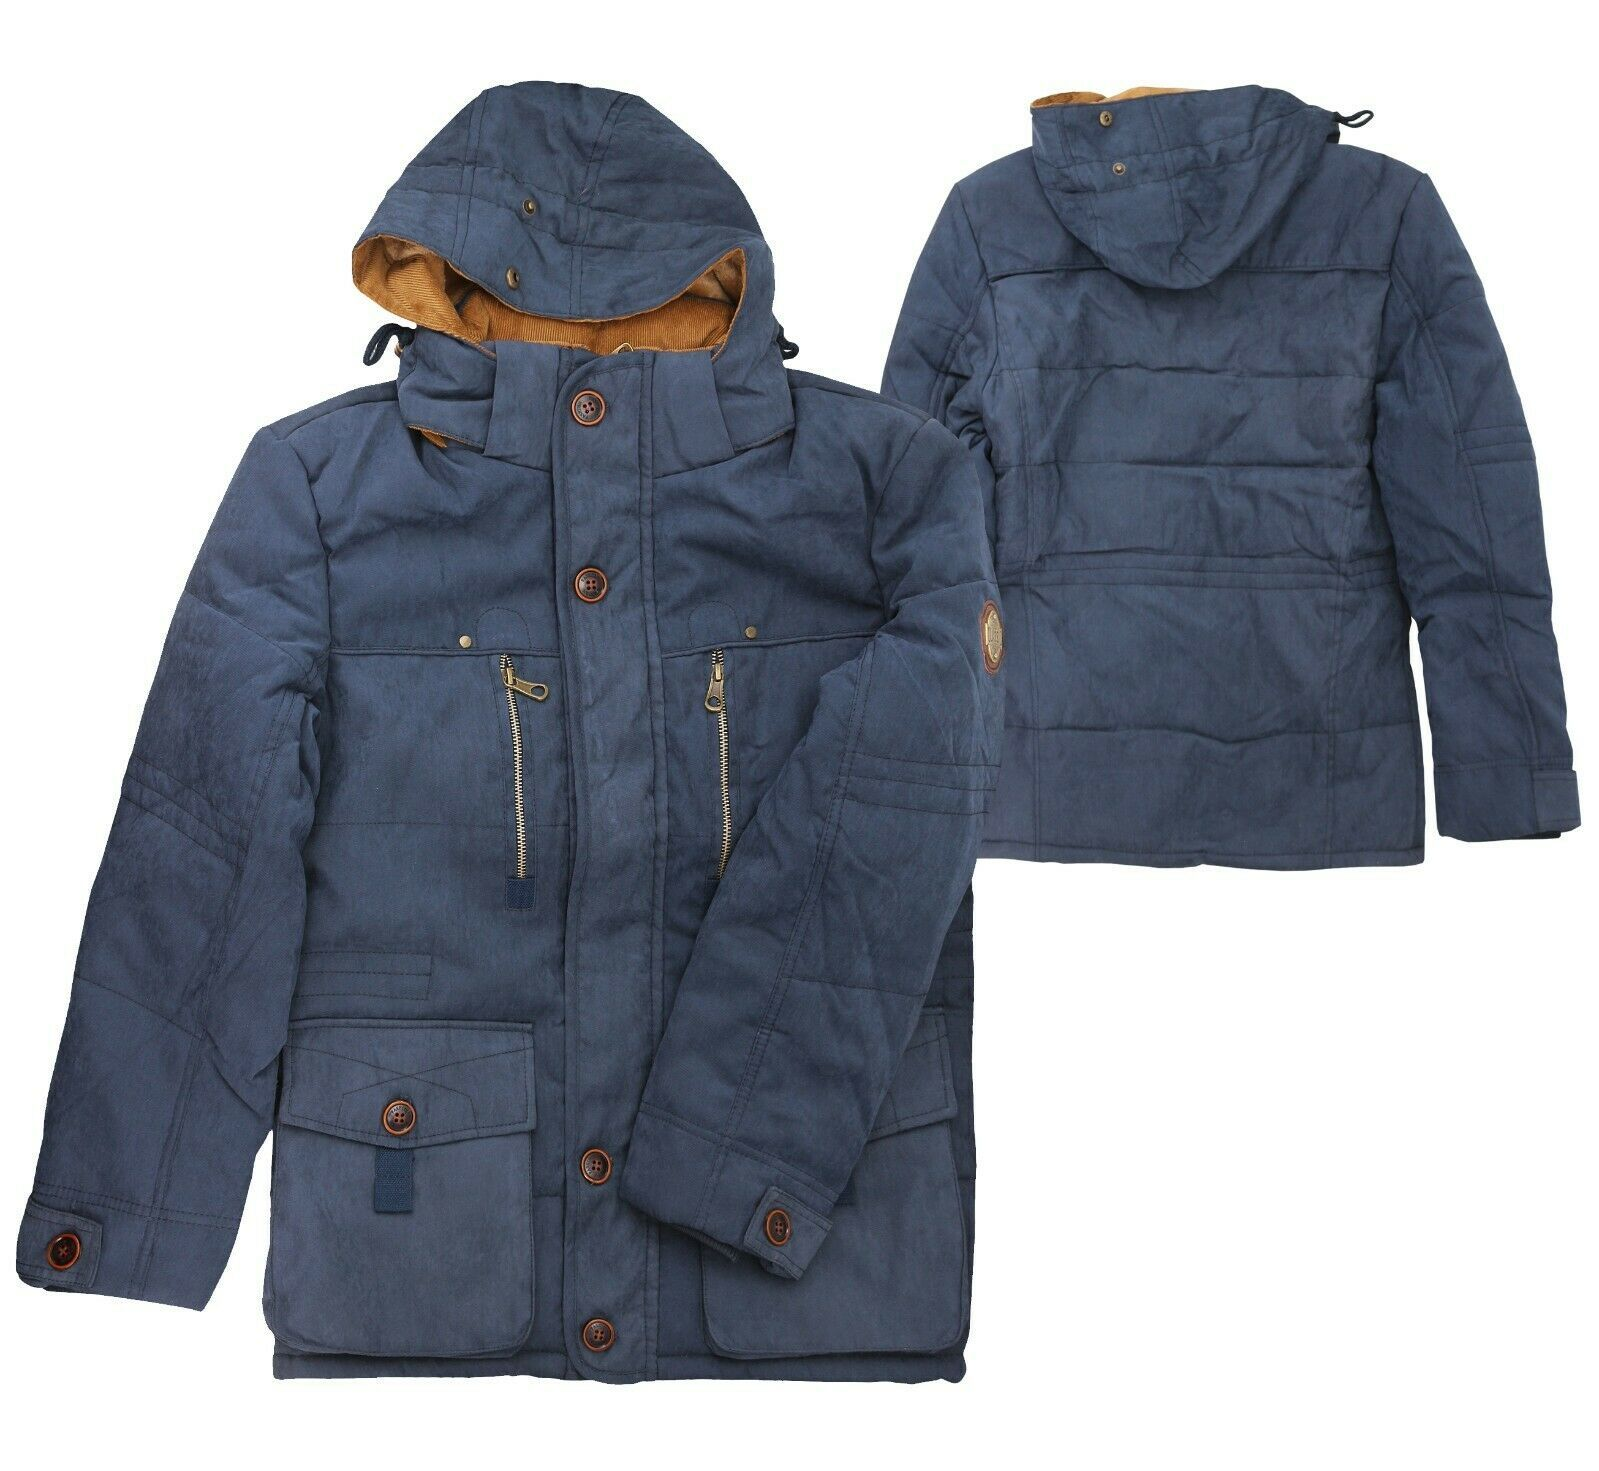 Men's Heavy Weight Sherpa Lined Removable Hood Winter Coat Insulated Navy Jacket